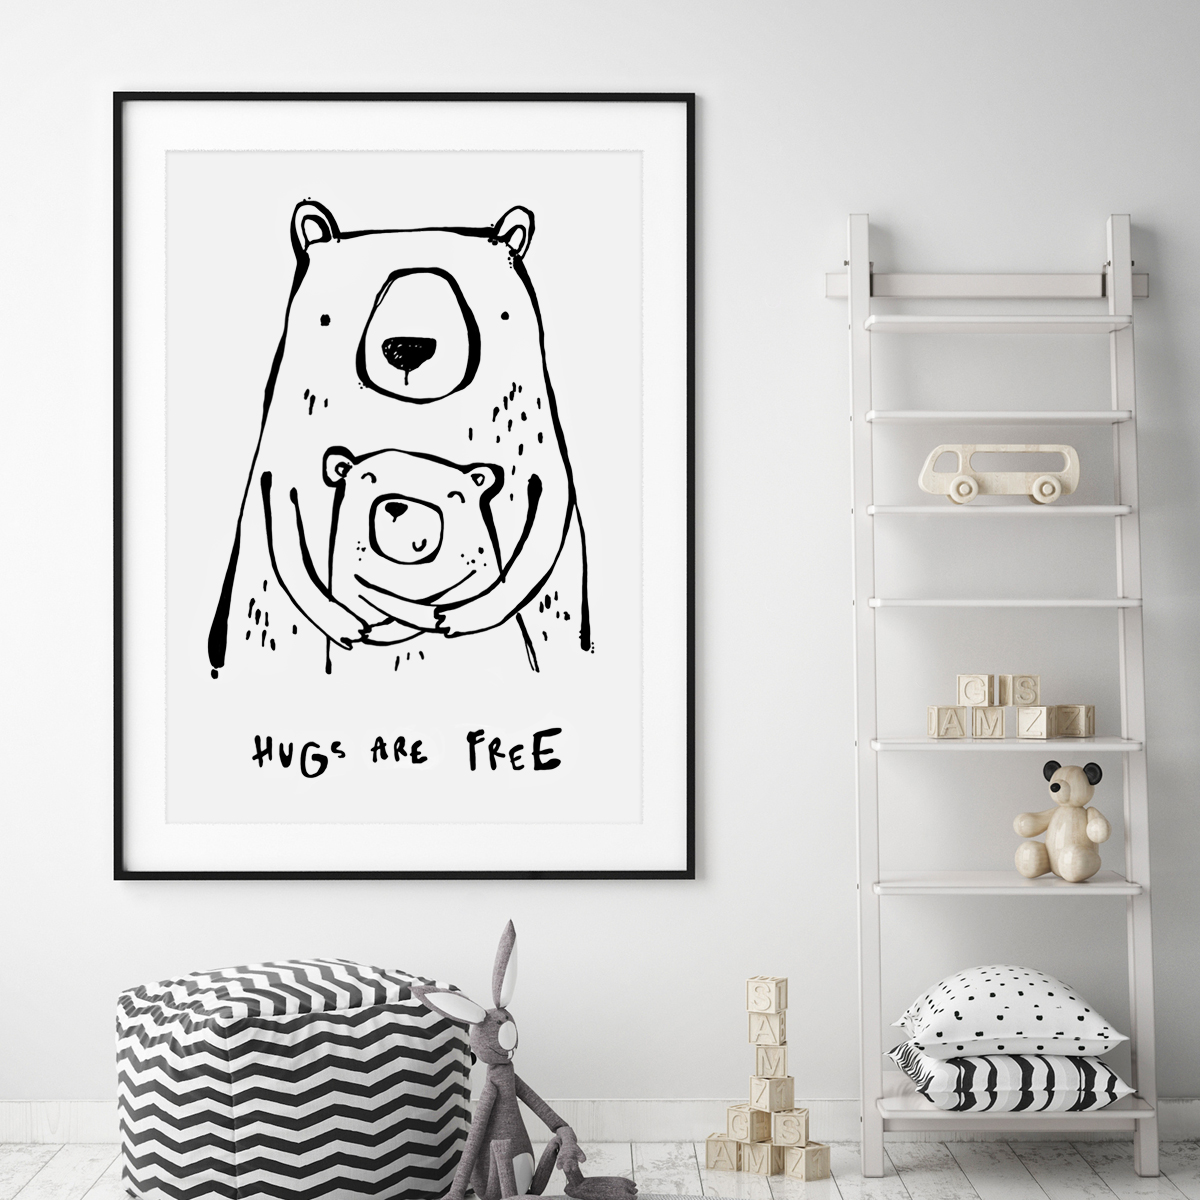 Huga are free bear framed